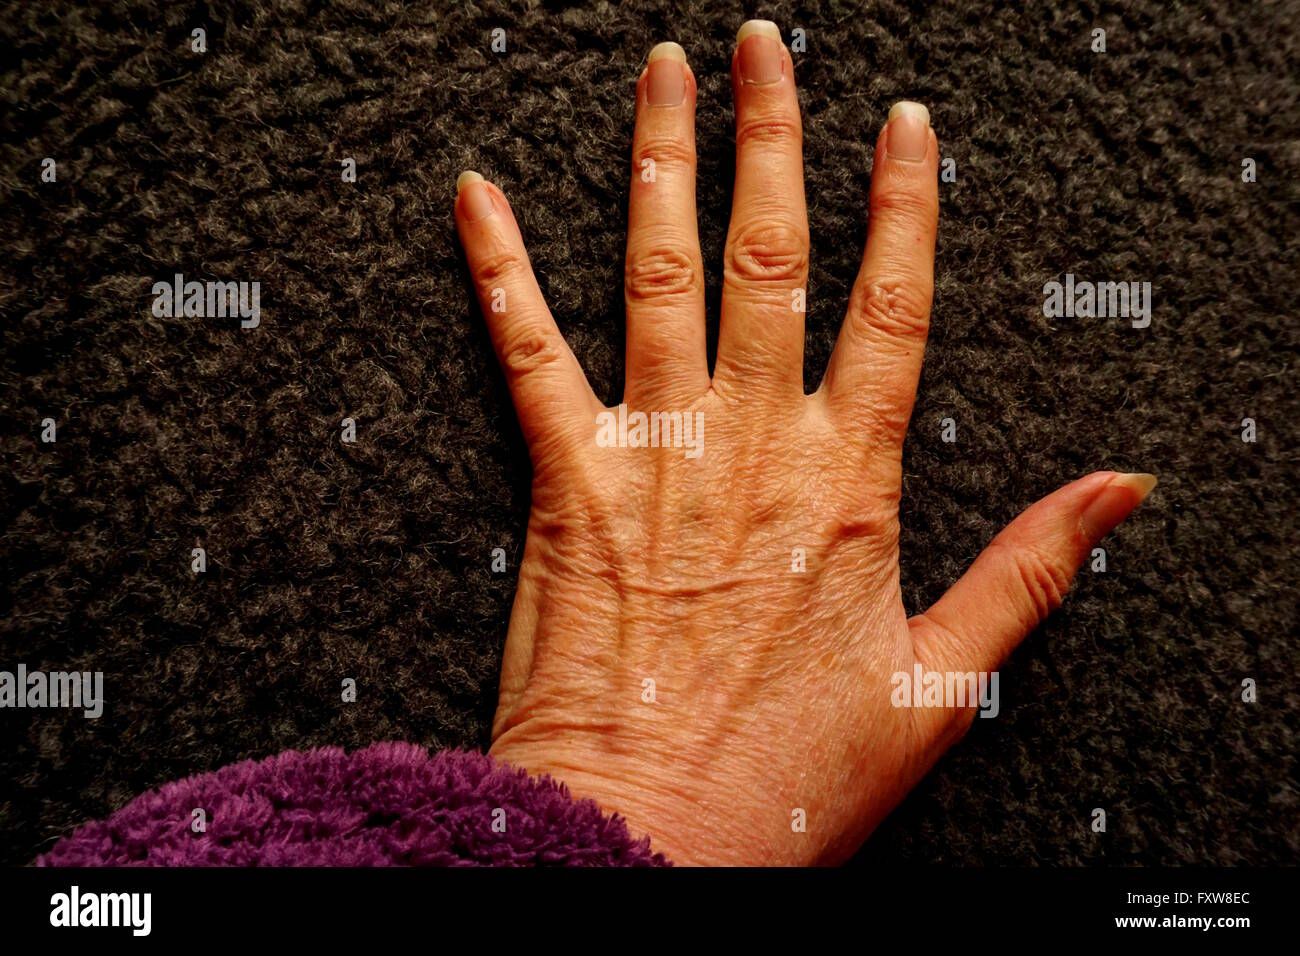 Wrinkled hand. - Stock Image